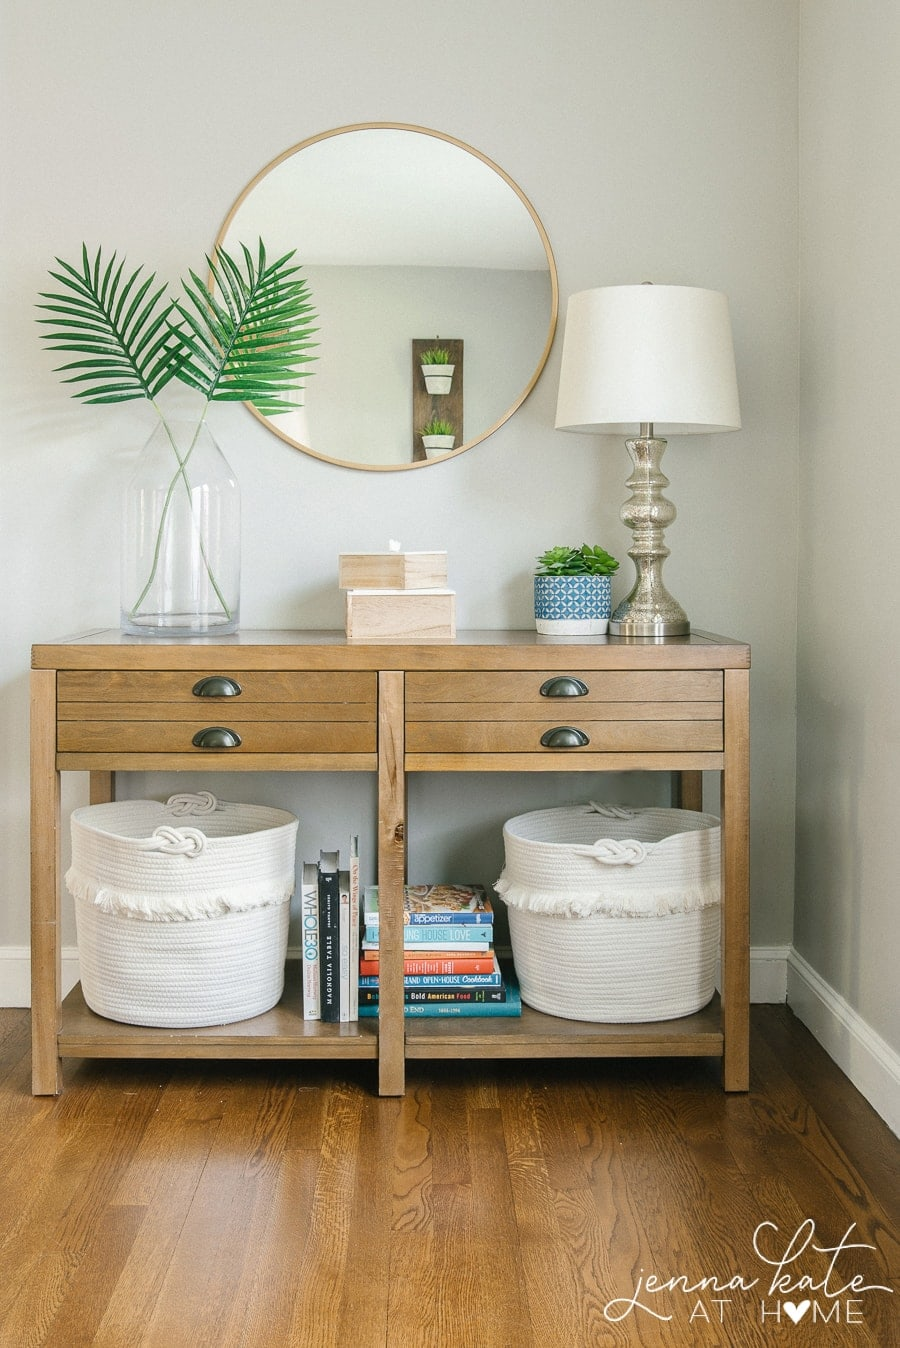 living room console table with toy storage baskets underneath